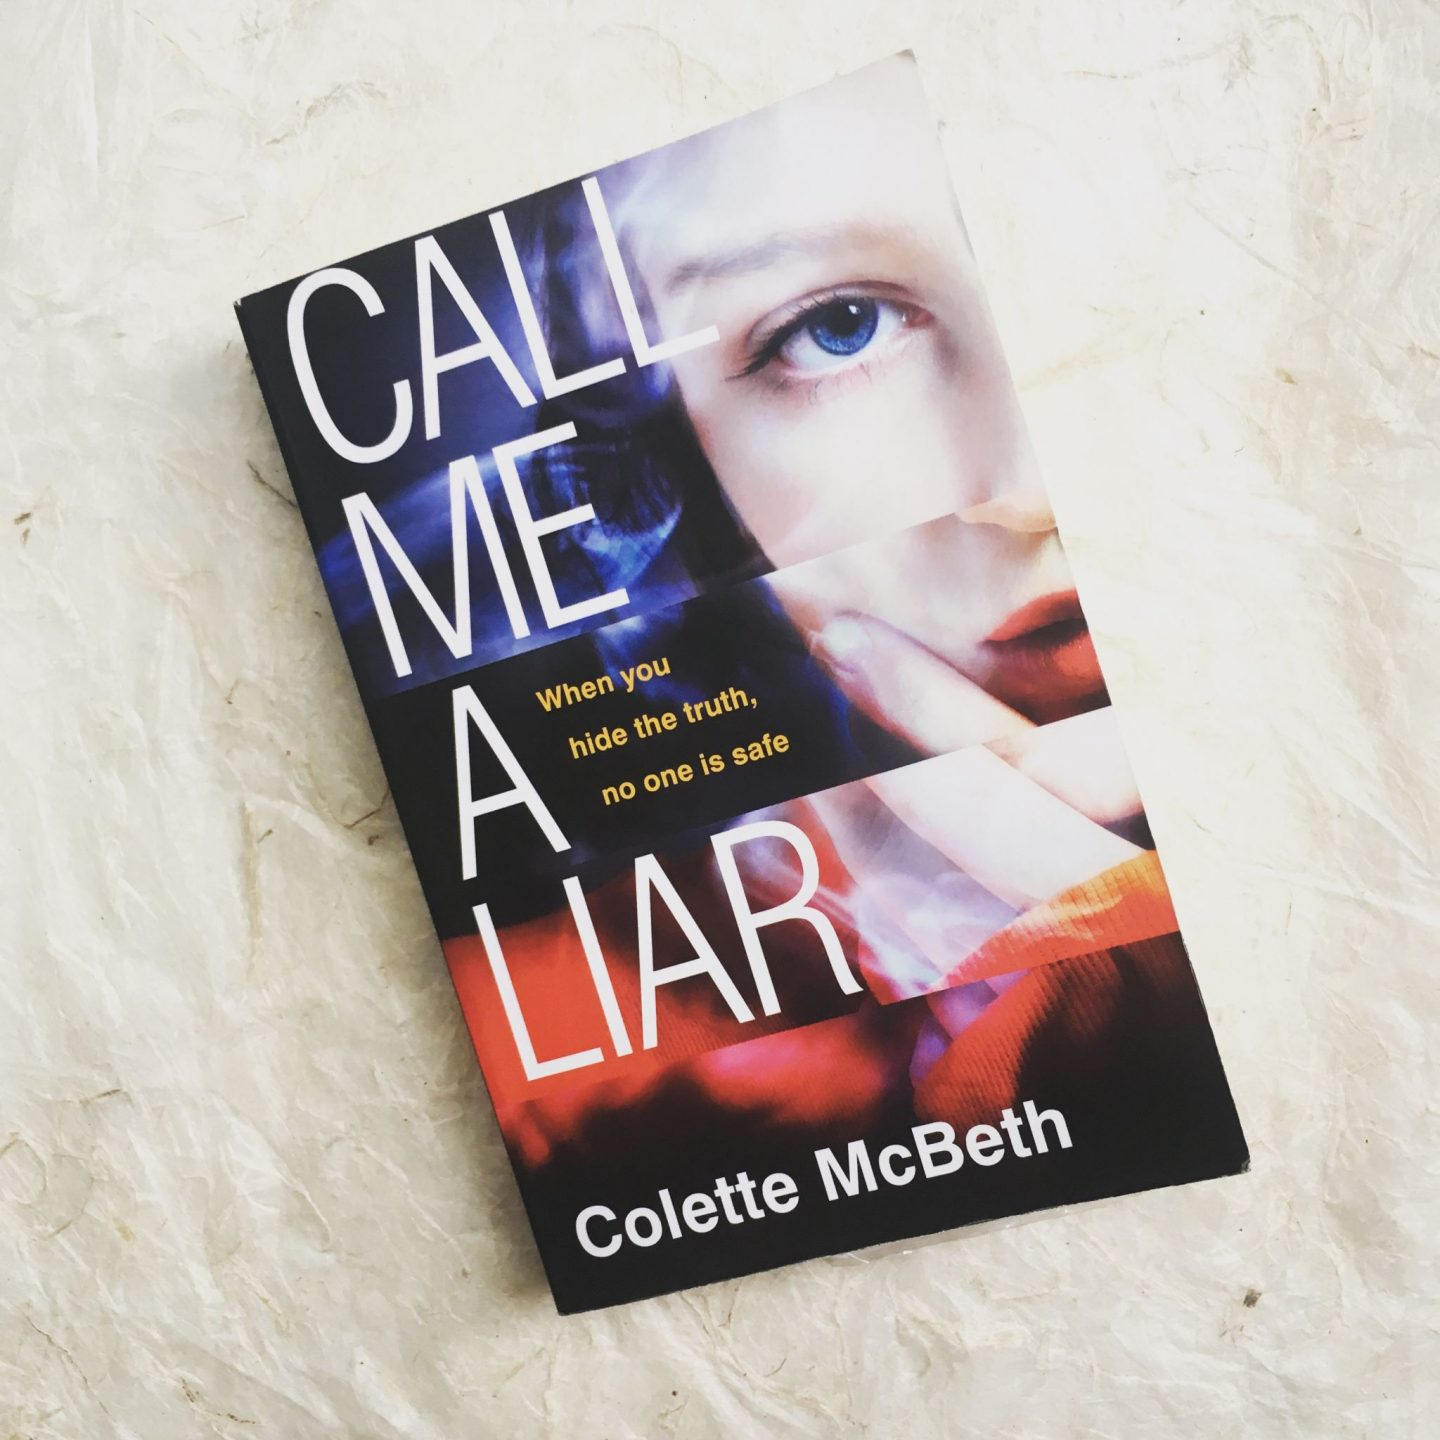 Call Me a Liar; a chilling summer read